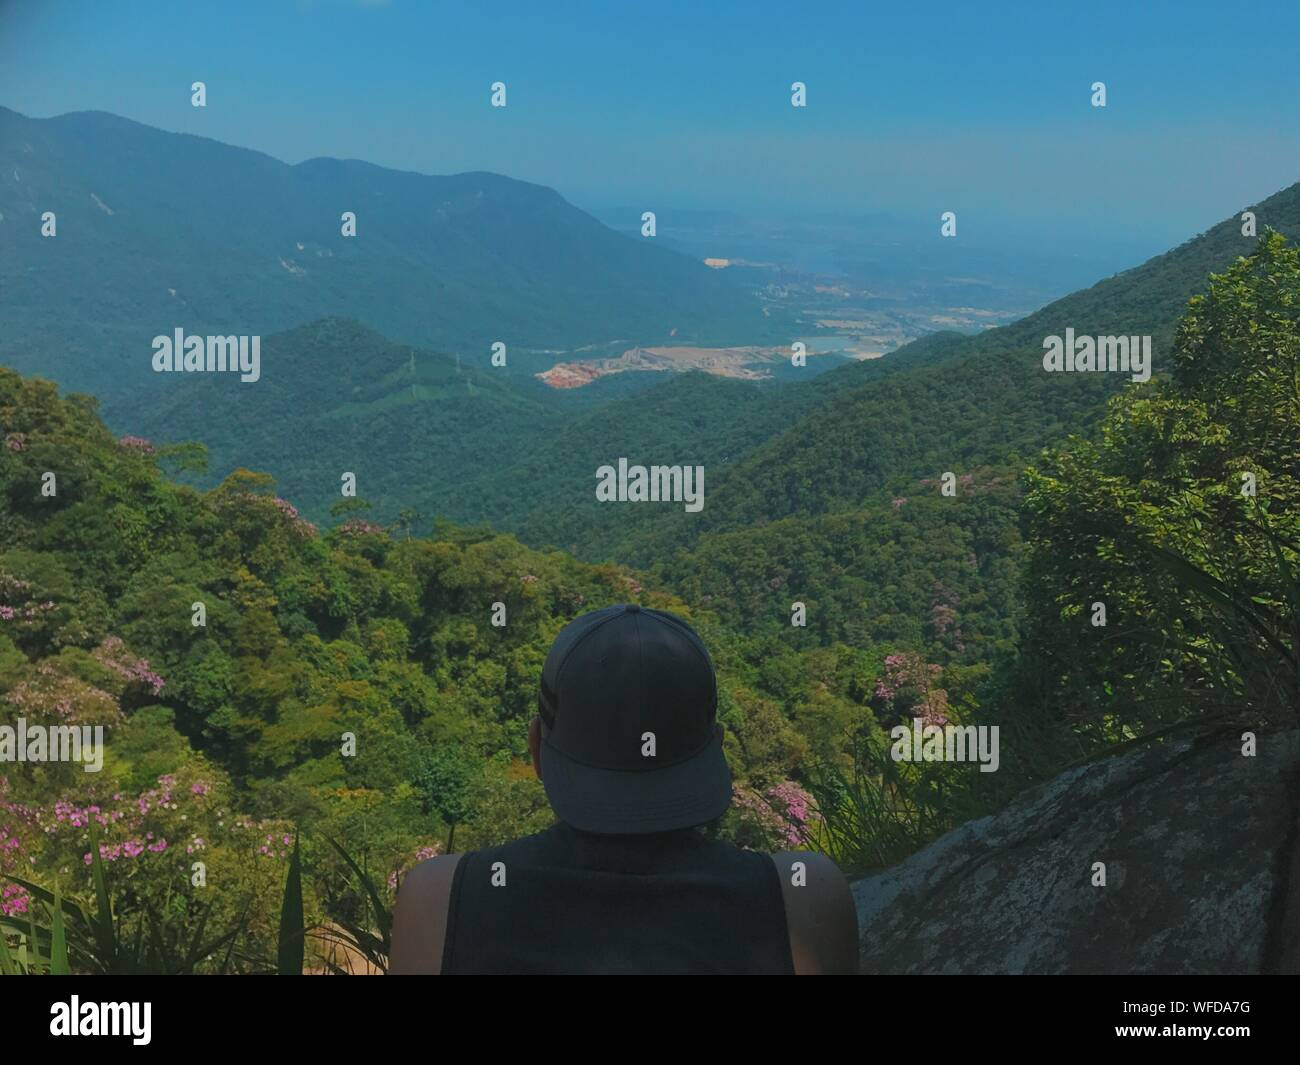 Rear View Of Man Wearing Cap Looking At Mountains Against Clear Blue Sky Stock Photo